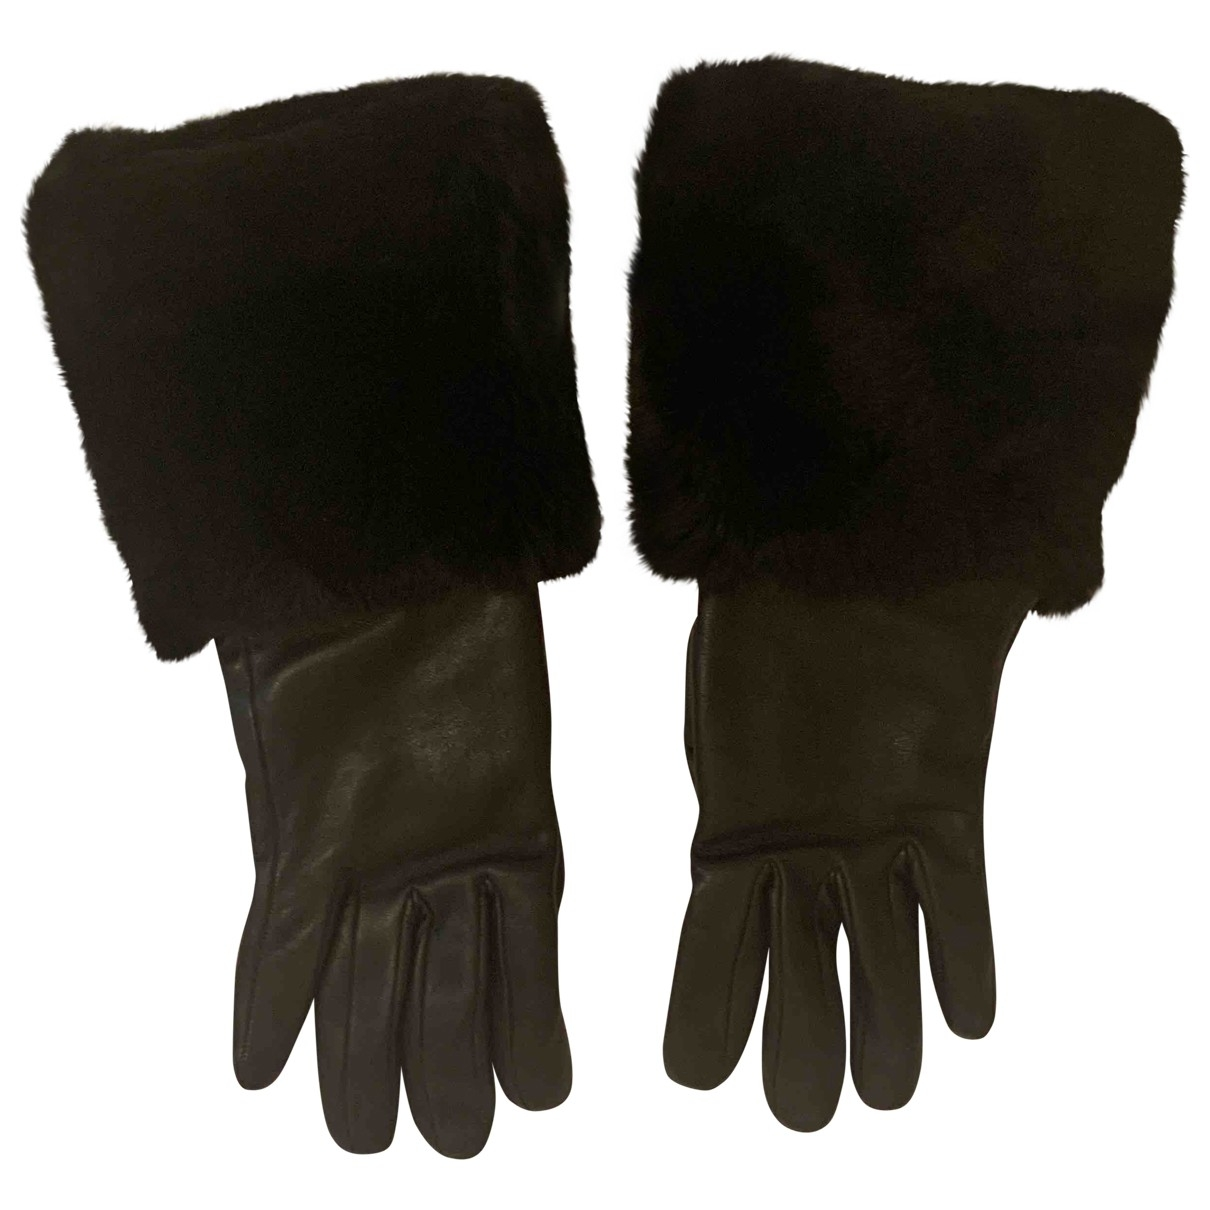 Lanvin \N Black Leather Gloves for Women 6.5 Inches